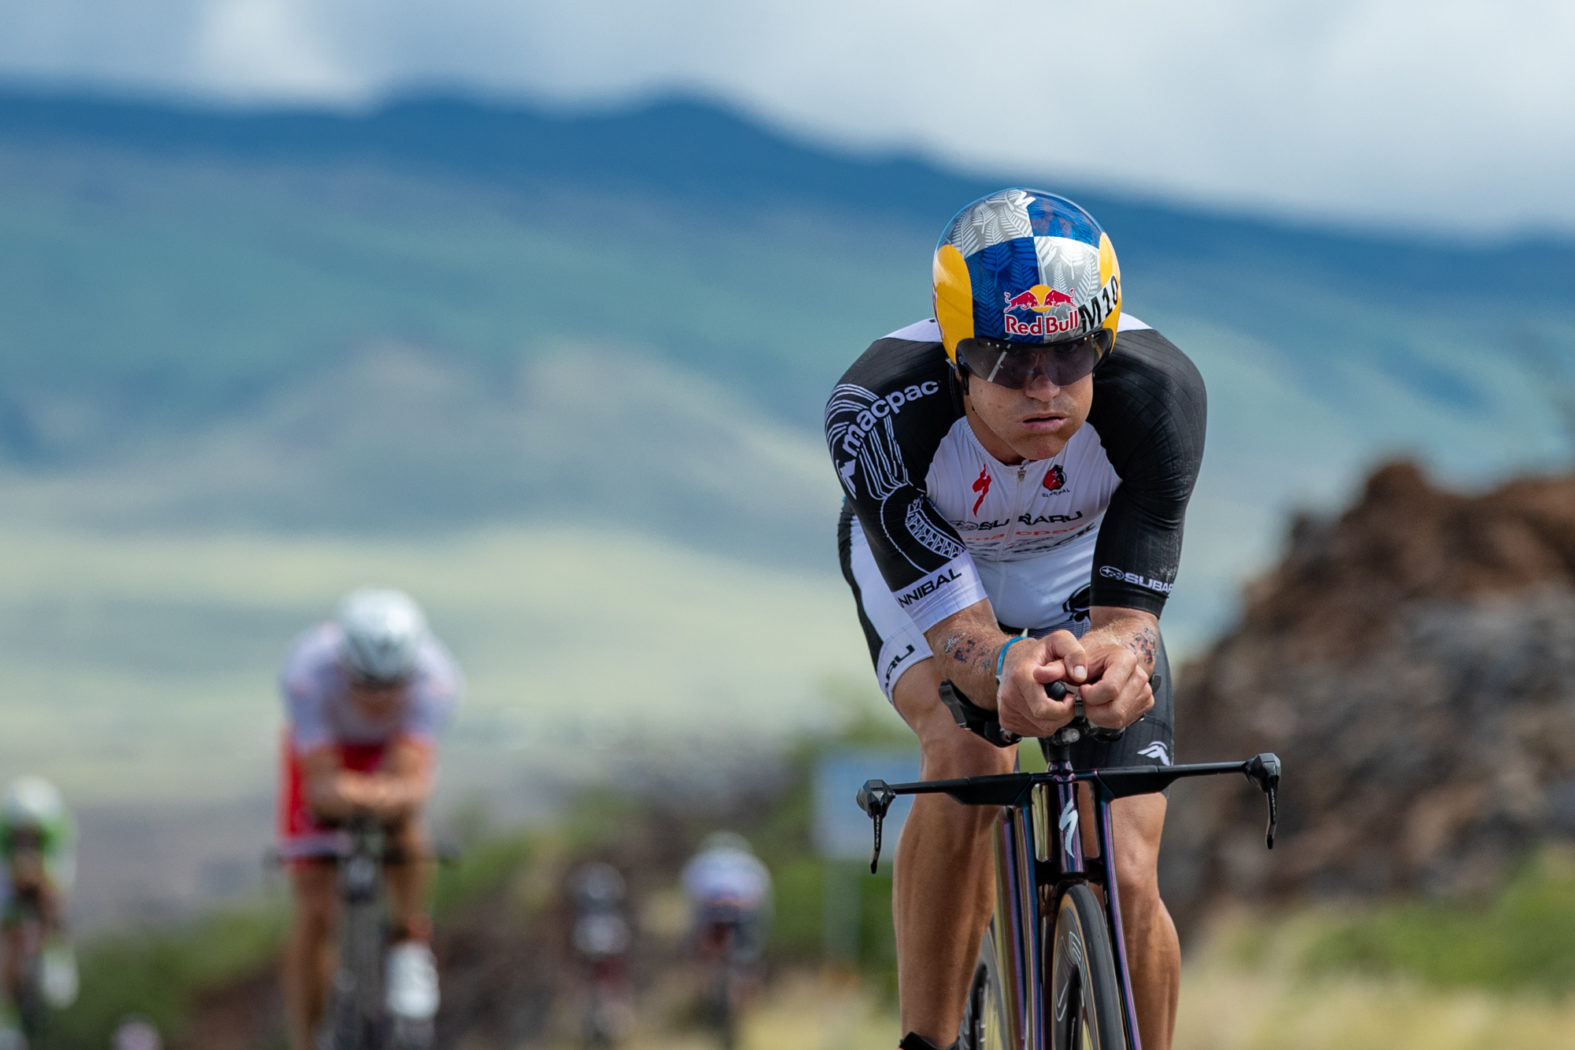 CURRIE TRIUMPHS WITH A TOP FIVE AT KONA WORLD IRONMAN CHAMPS